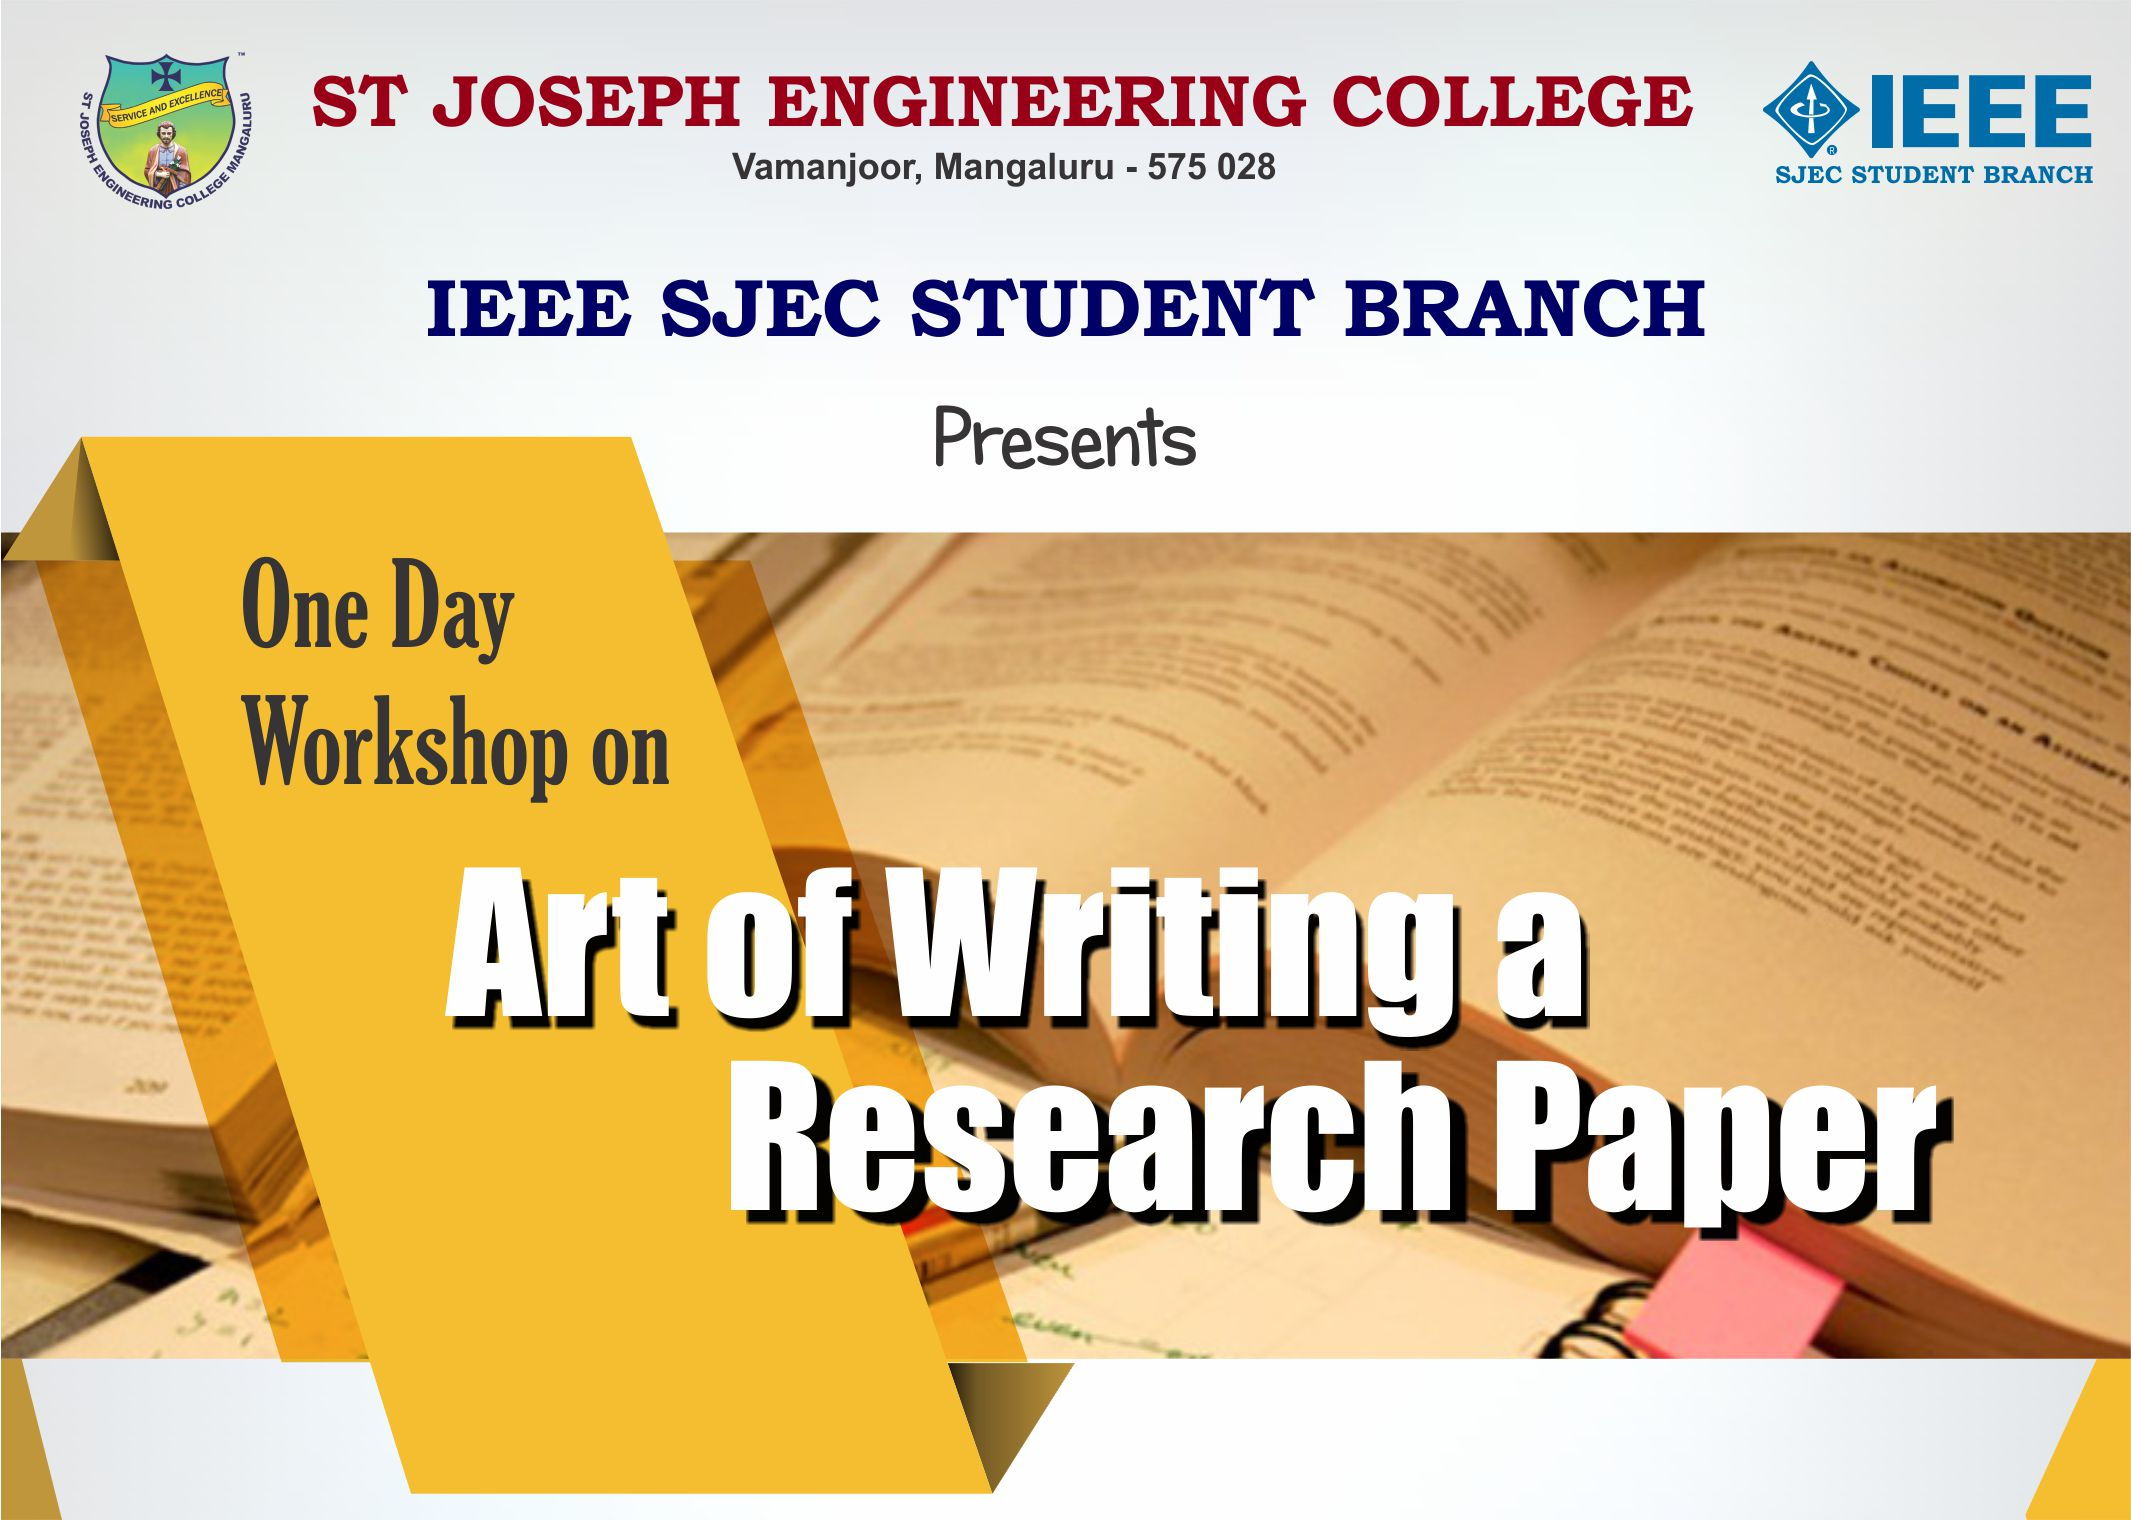 011 Workshop Banner Research Paper Striking Writing Papers Lester 16th Edition A Complete Guide James D. Full